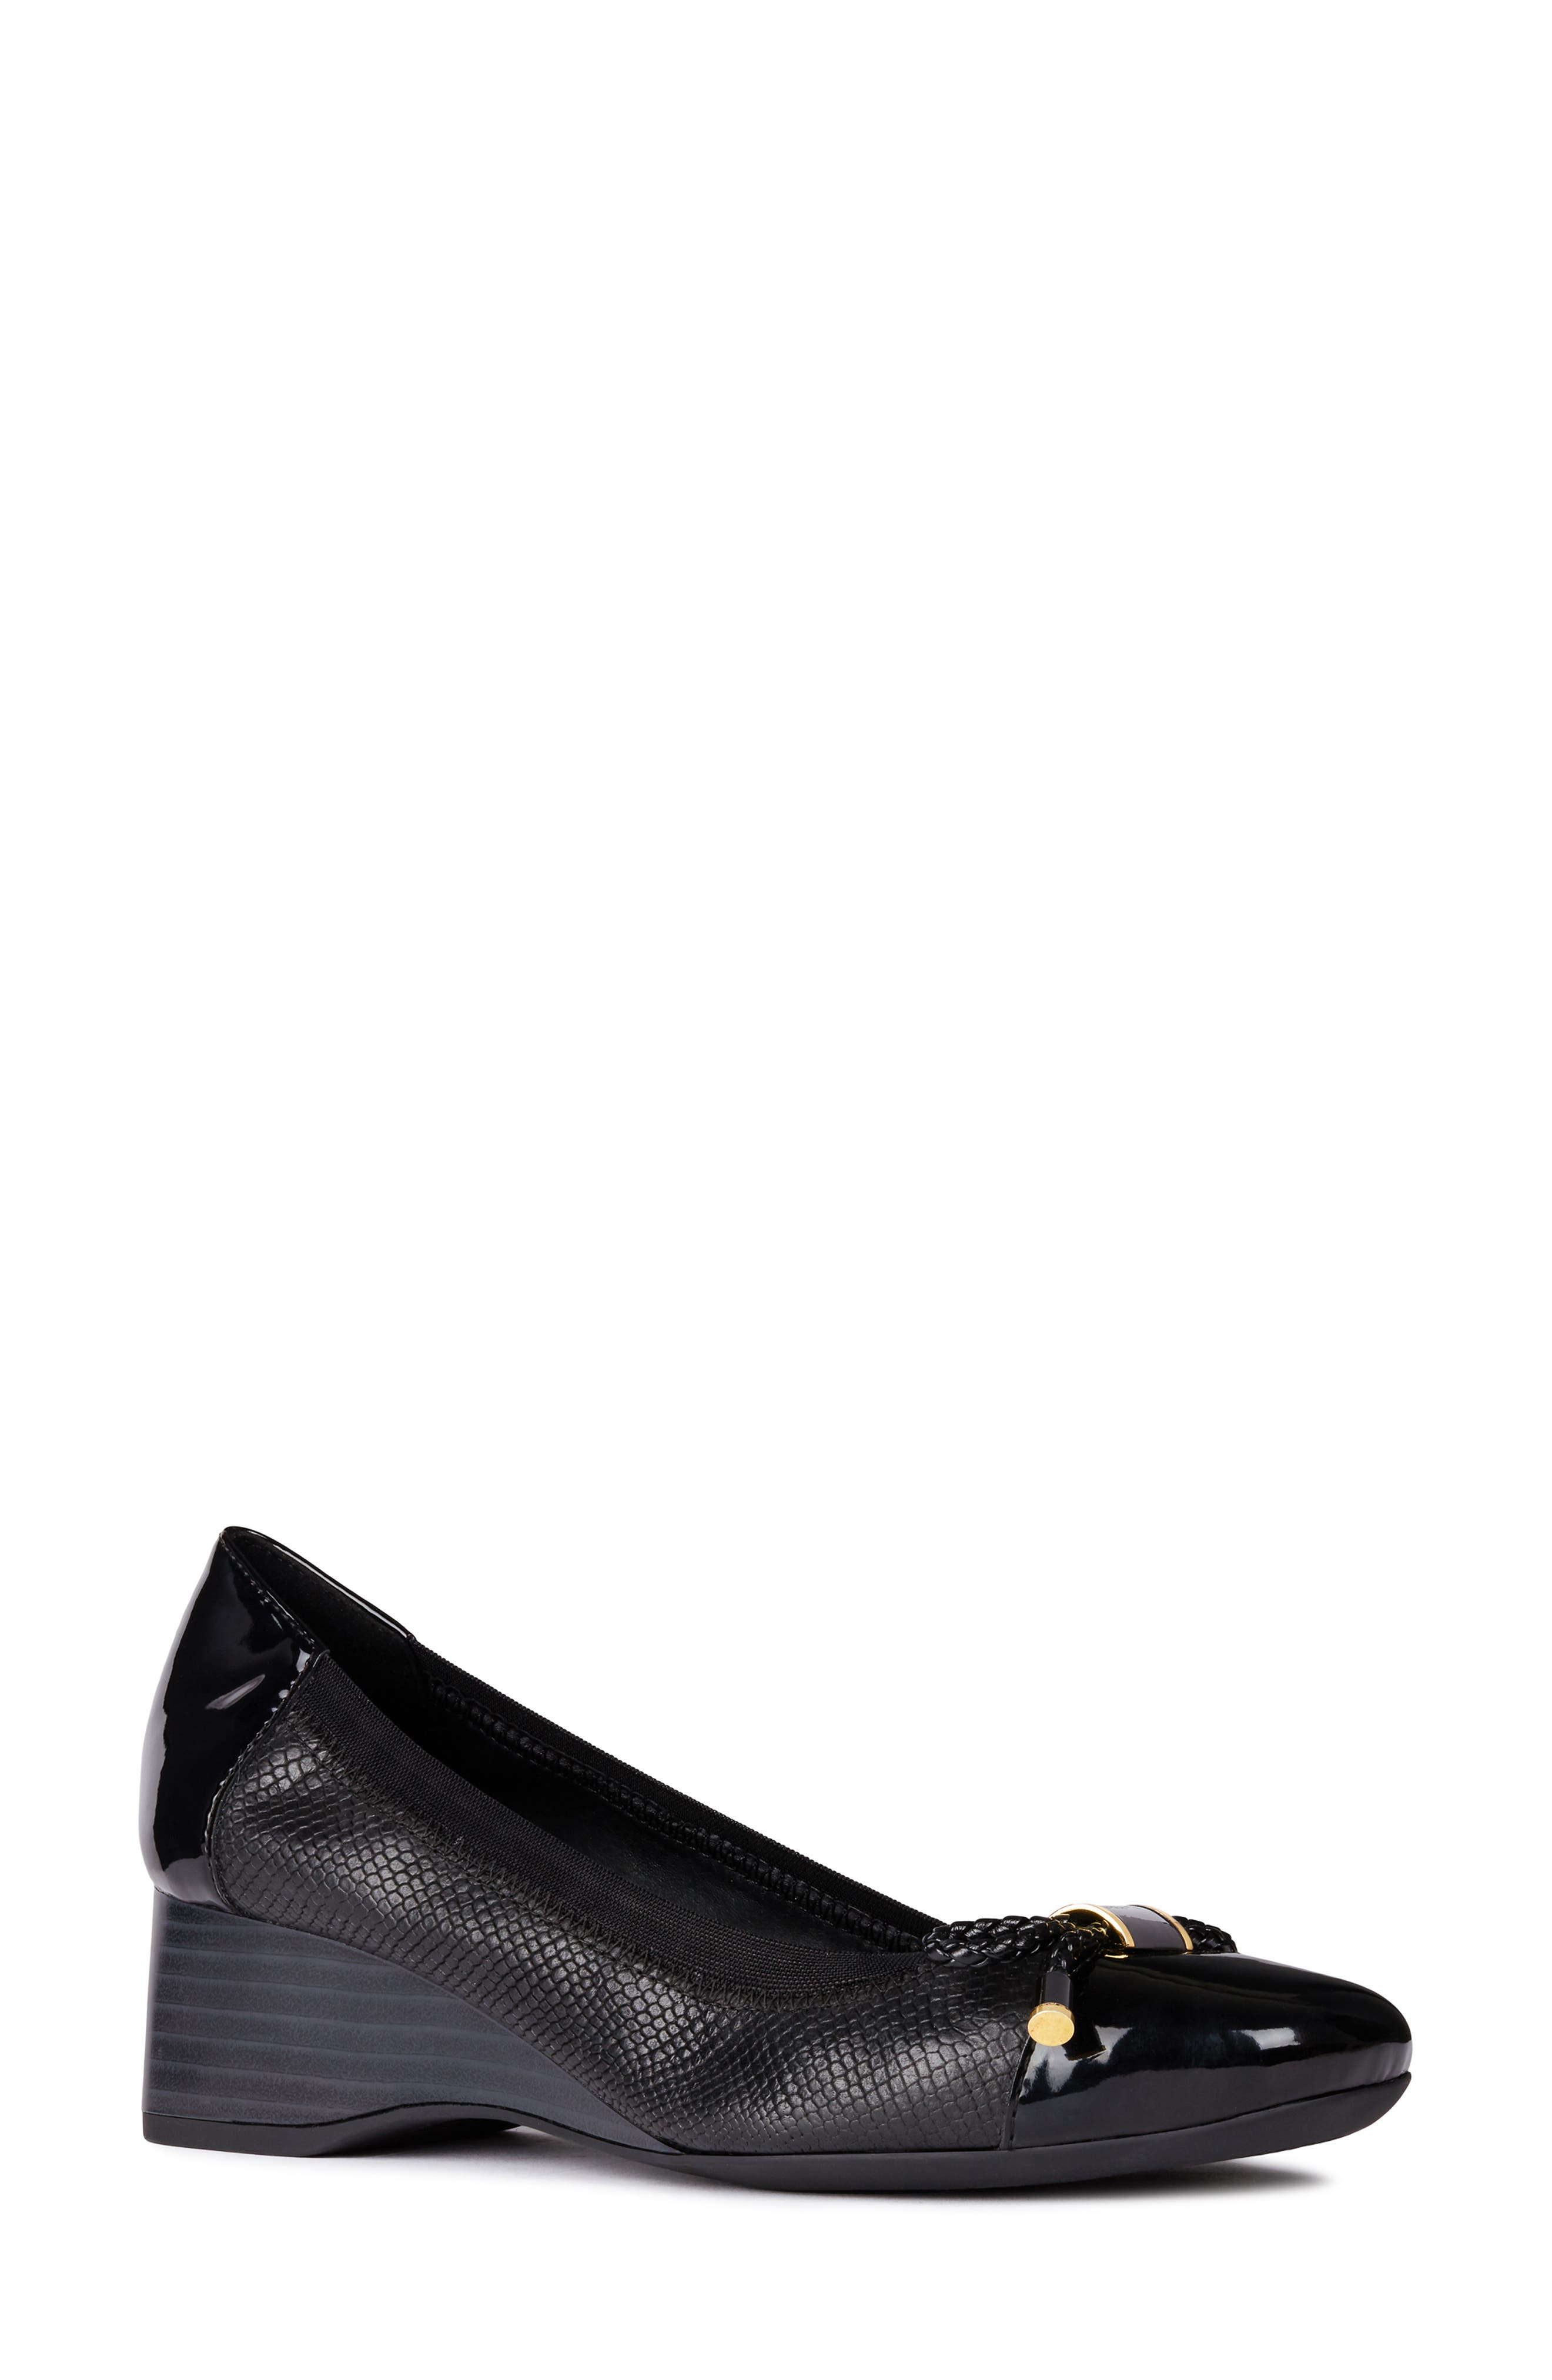 GEOX, Audalya Wedge Pump, Main thumbnail 1, color, BLACK LEATHER